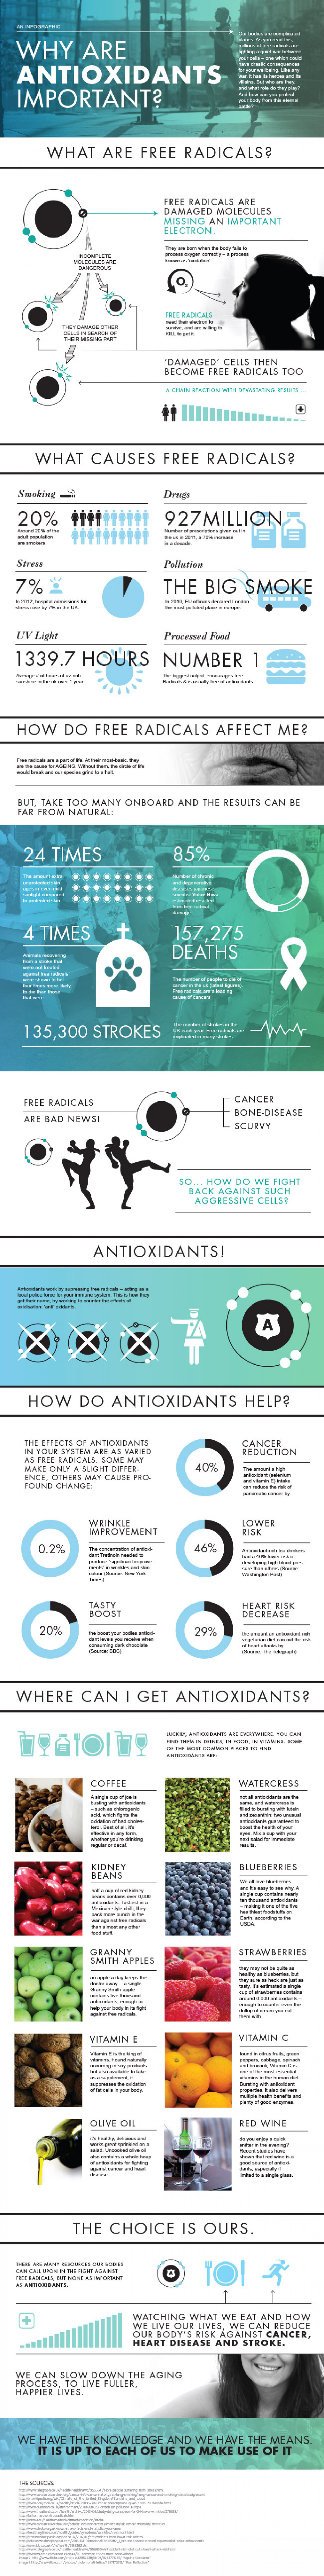 Why Are Antioxidants Important? Infographic